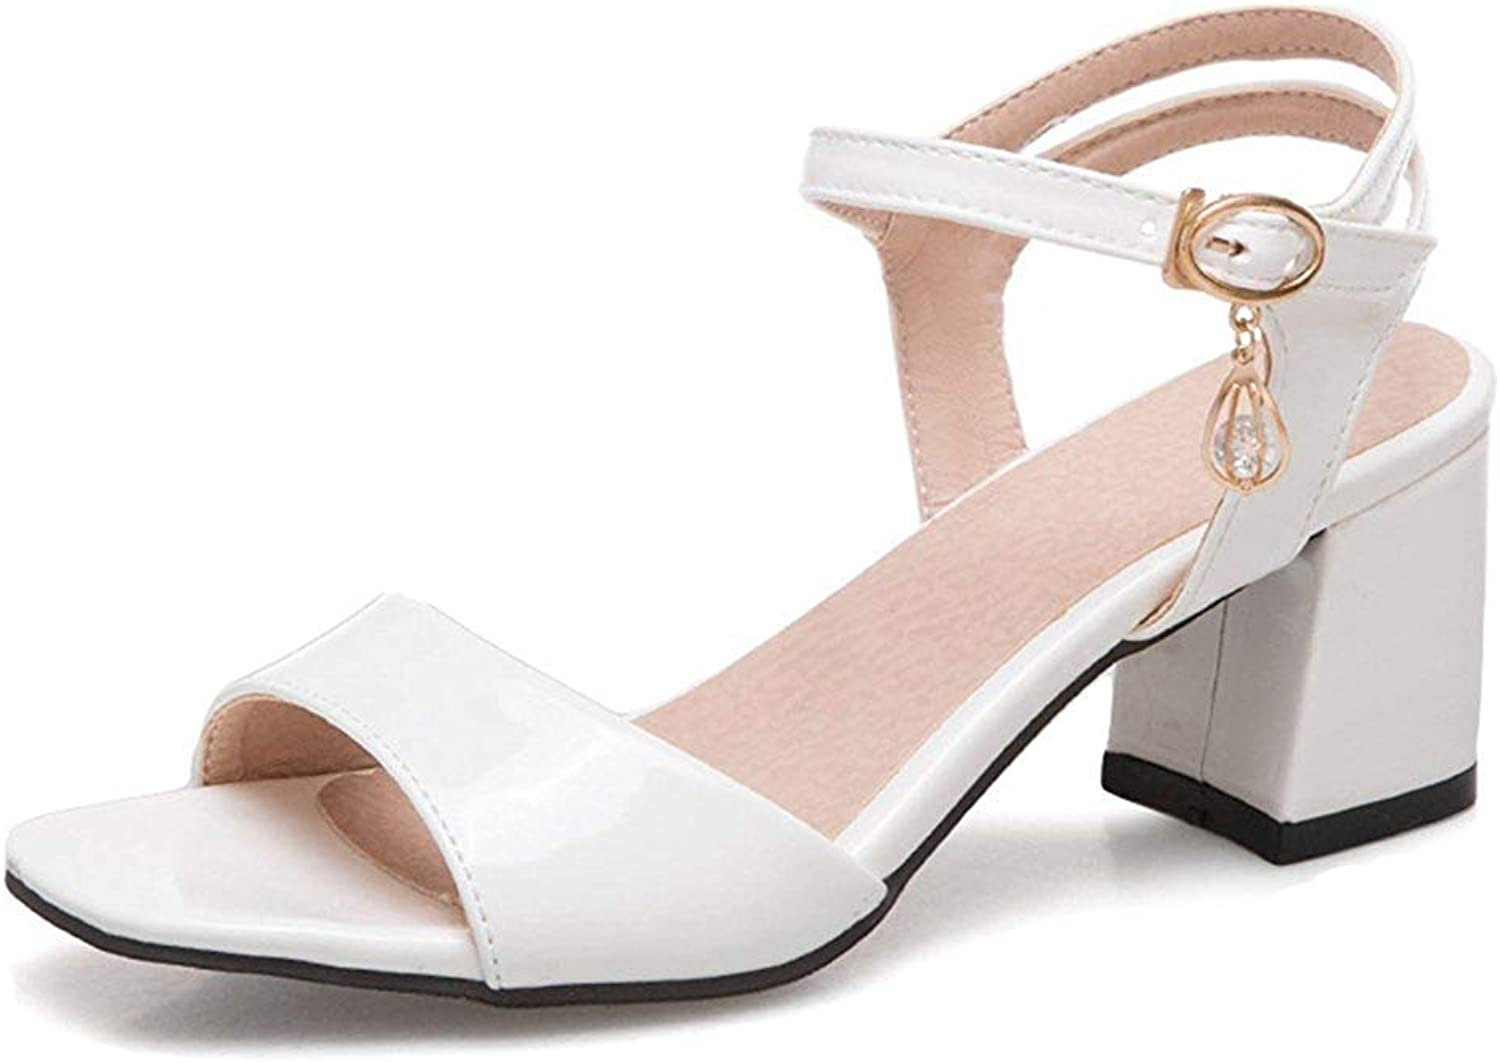 Unm Women's Comfort Simple Open Toe Mid Block Heel Burnished Dressy Ankle Strap Sandals with Buckle